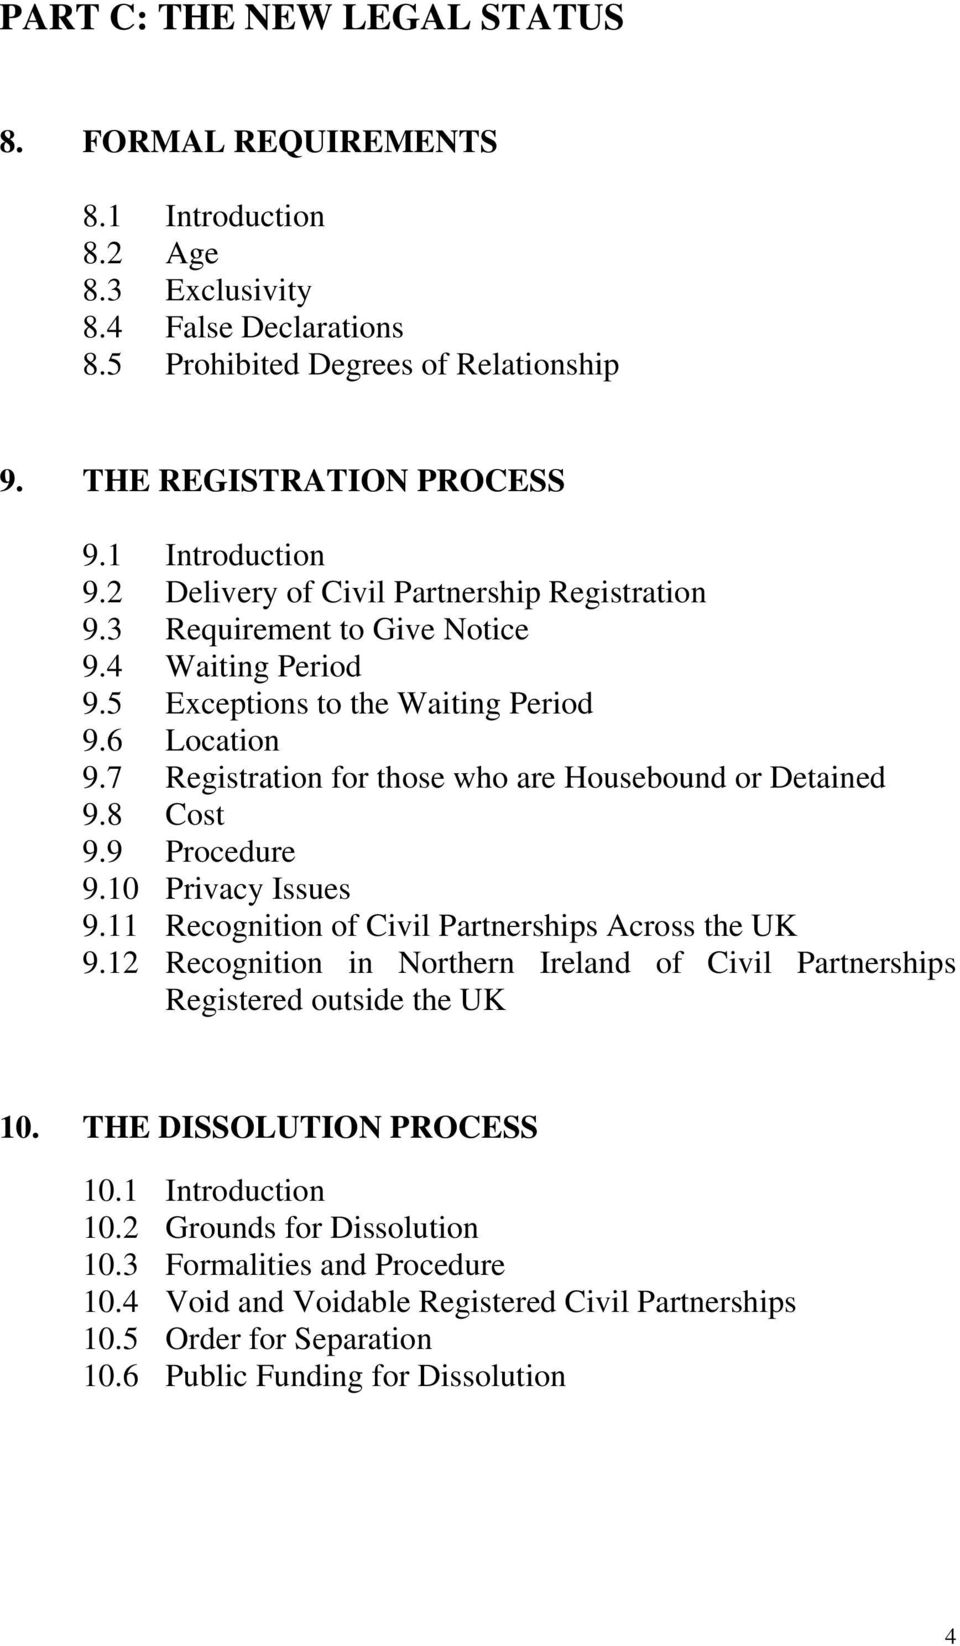 7 Registration for those who are Housebound or Detained 9.8 Cost 9.9 Procedure 9.10 Privacy Issues 9.11 Recognition of Civil Partnerships Across the UK 9.